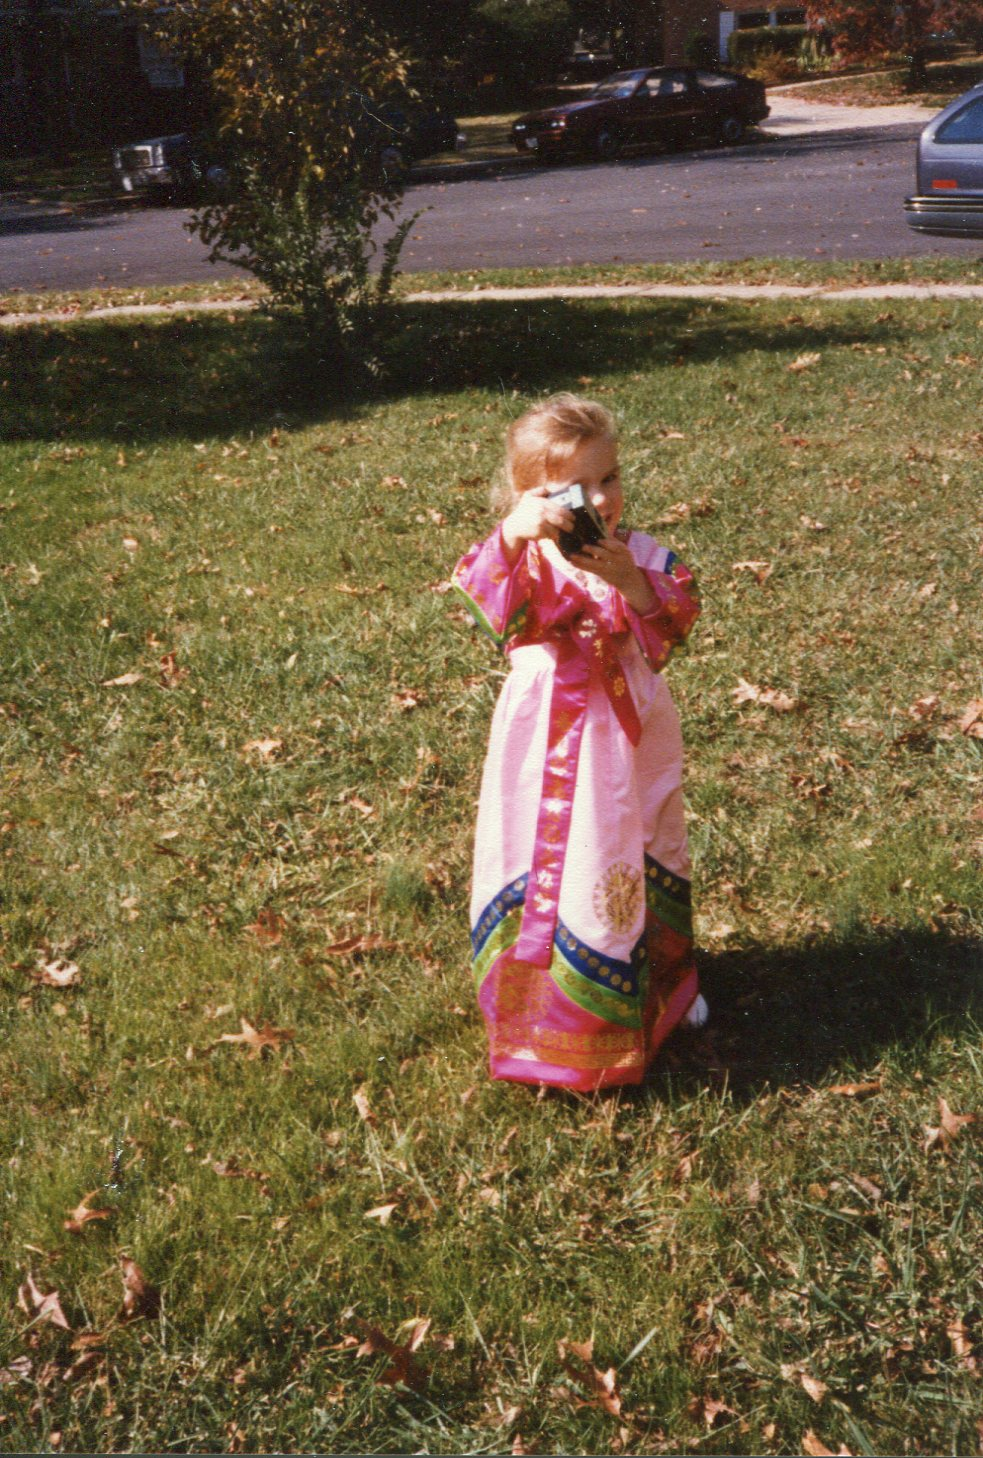 Me in traditional Korean dress, demonstrating an early love for camera.